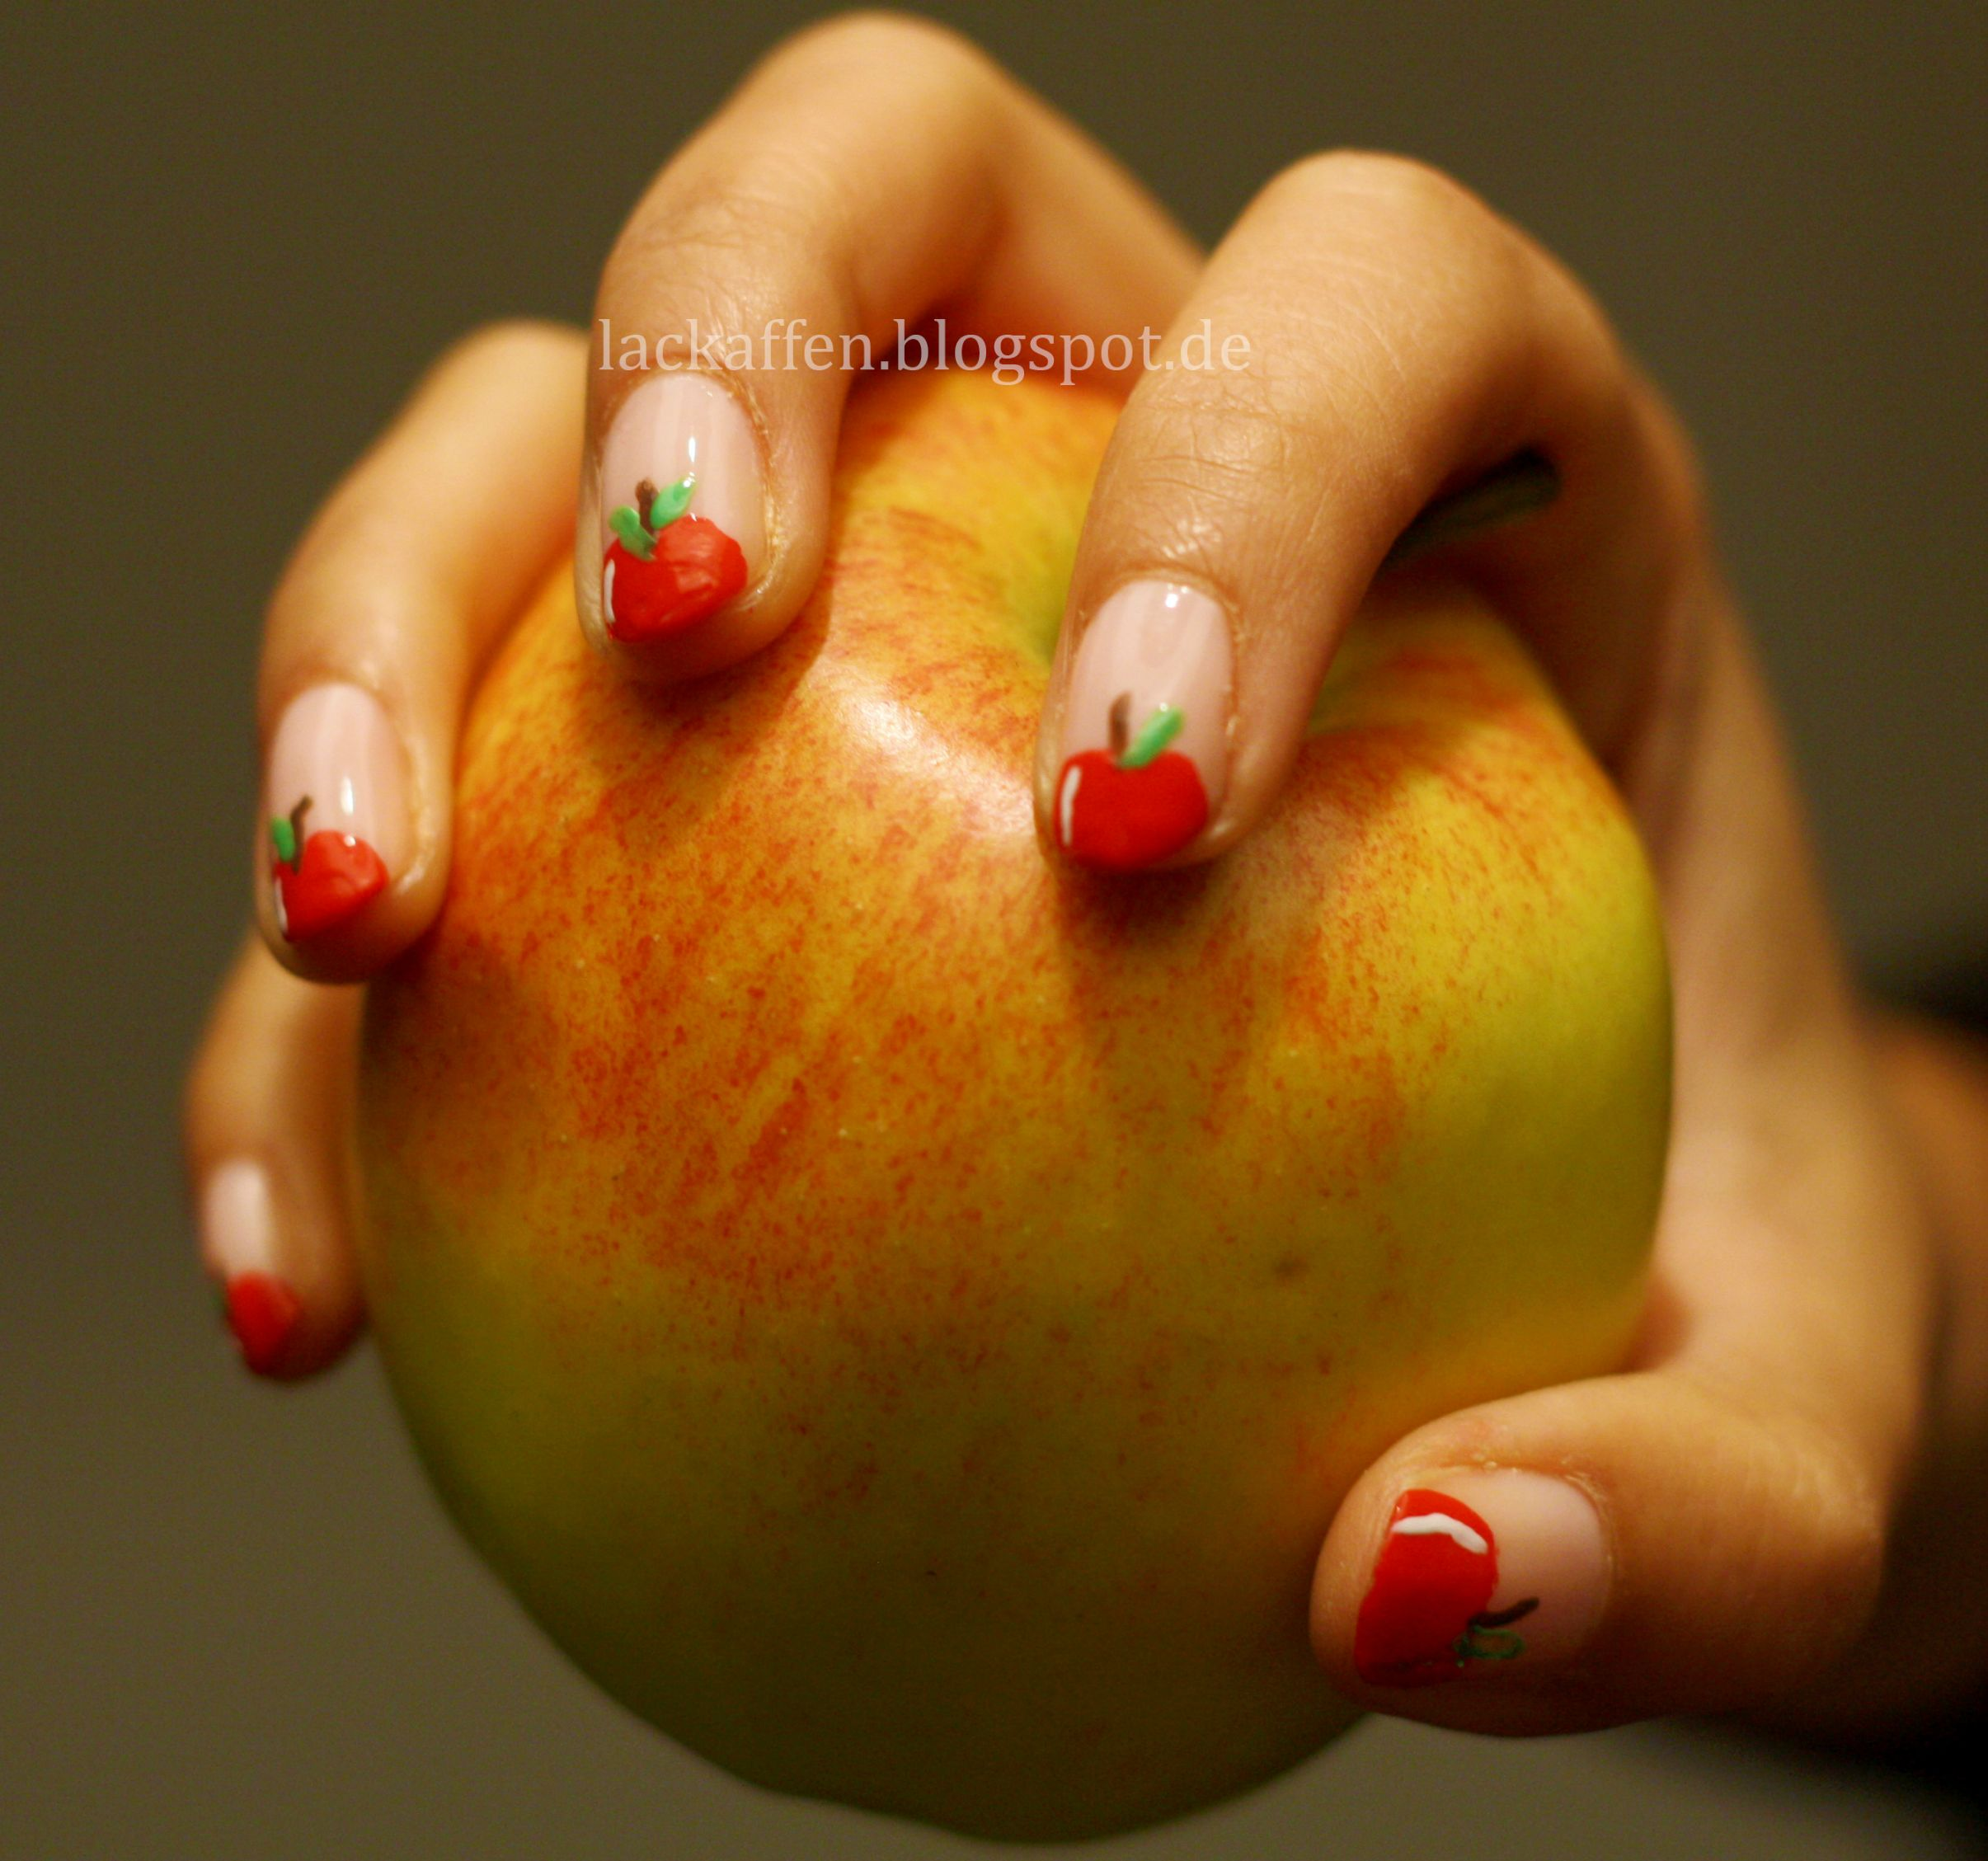 Try These Simple Nail Art Designs At Home